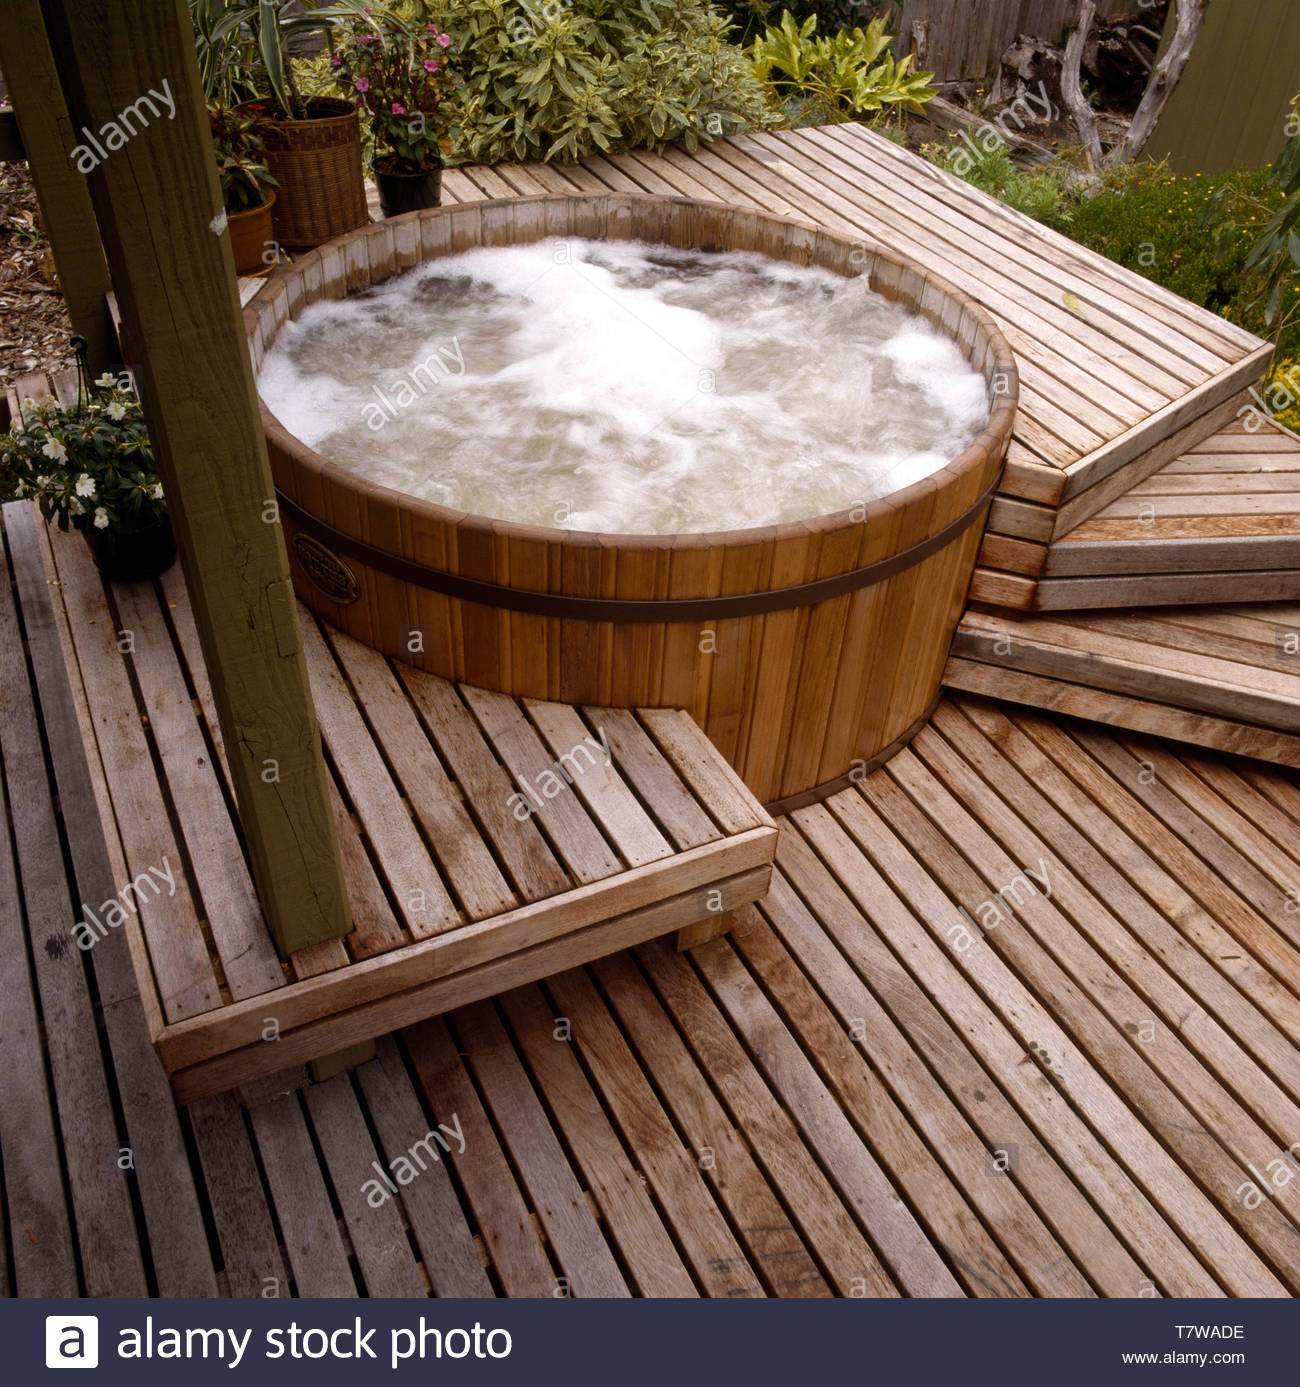 jacuzzi garden page=2